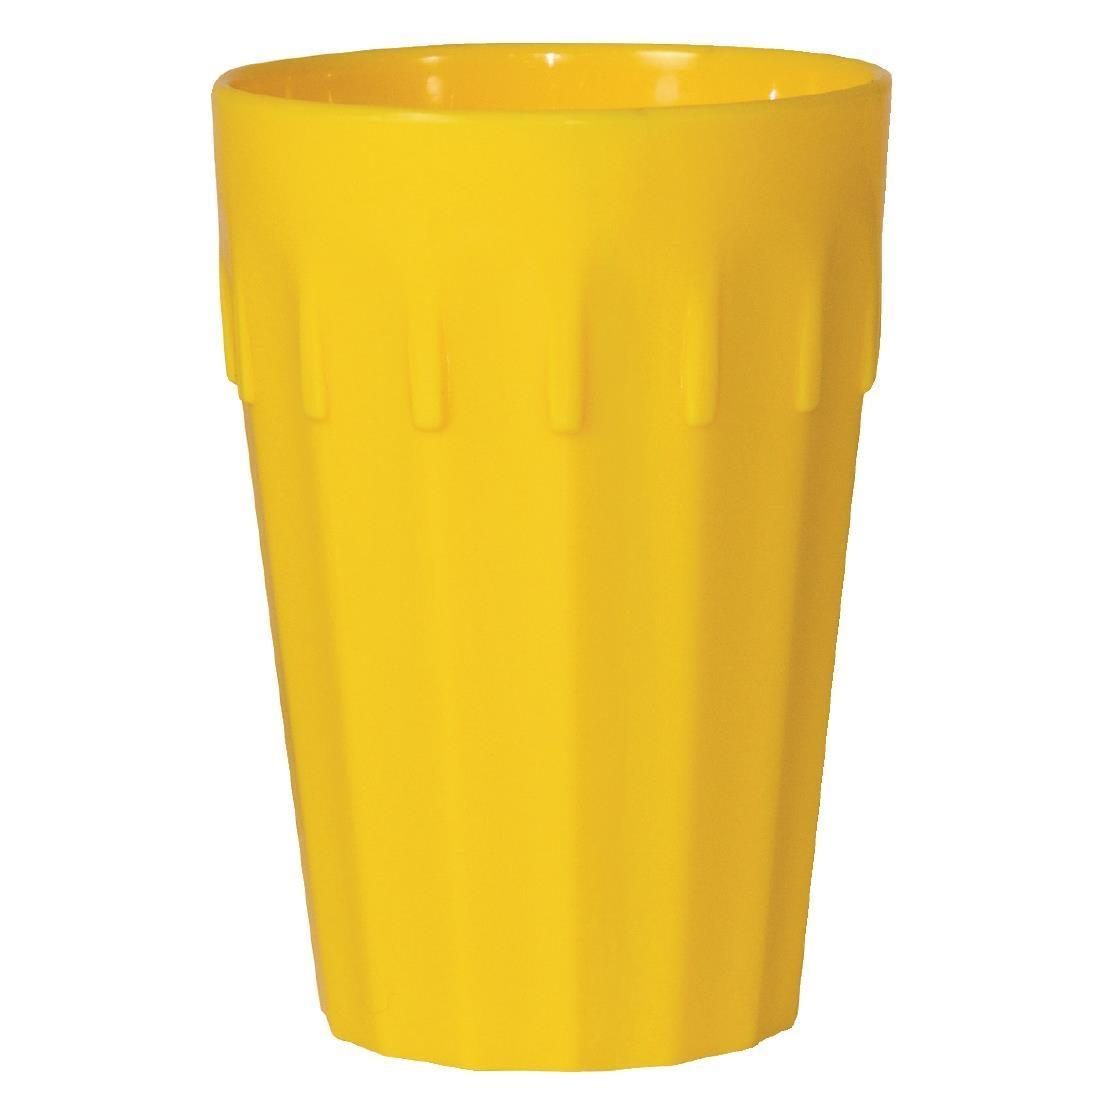 Kristallon Polycarbonate Tumblers Yellow 142ml - Case 12 - CE270